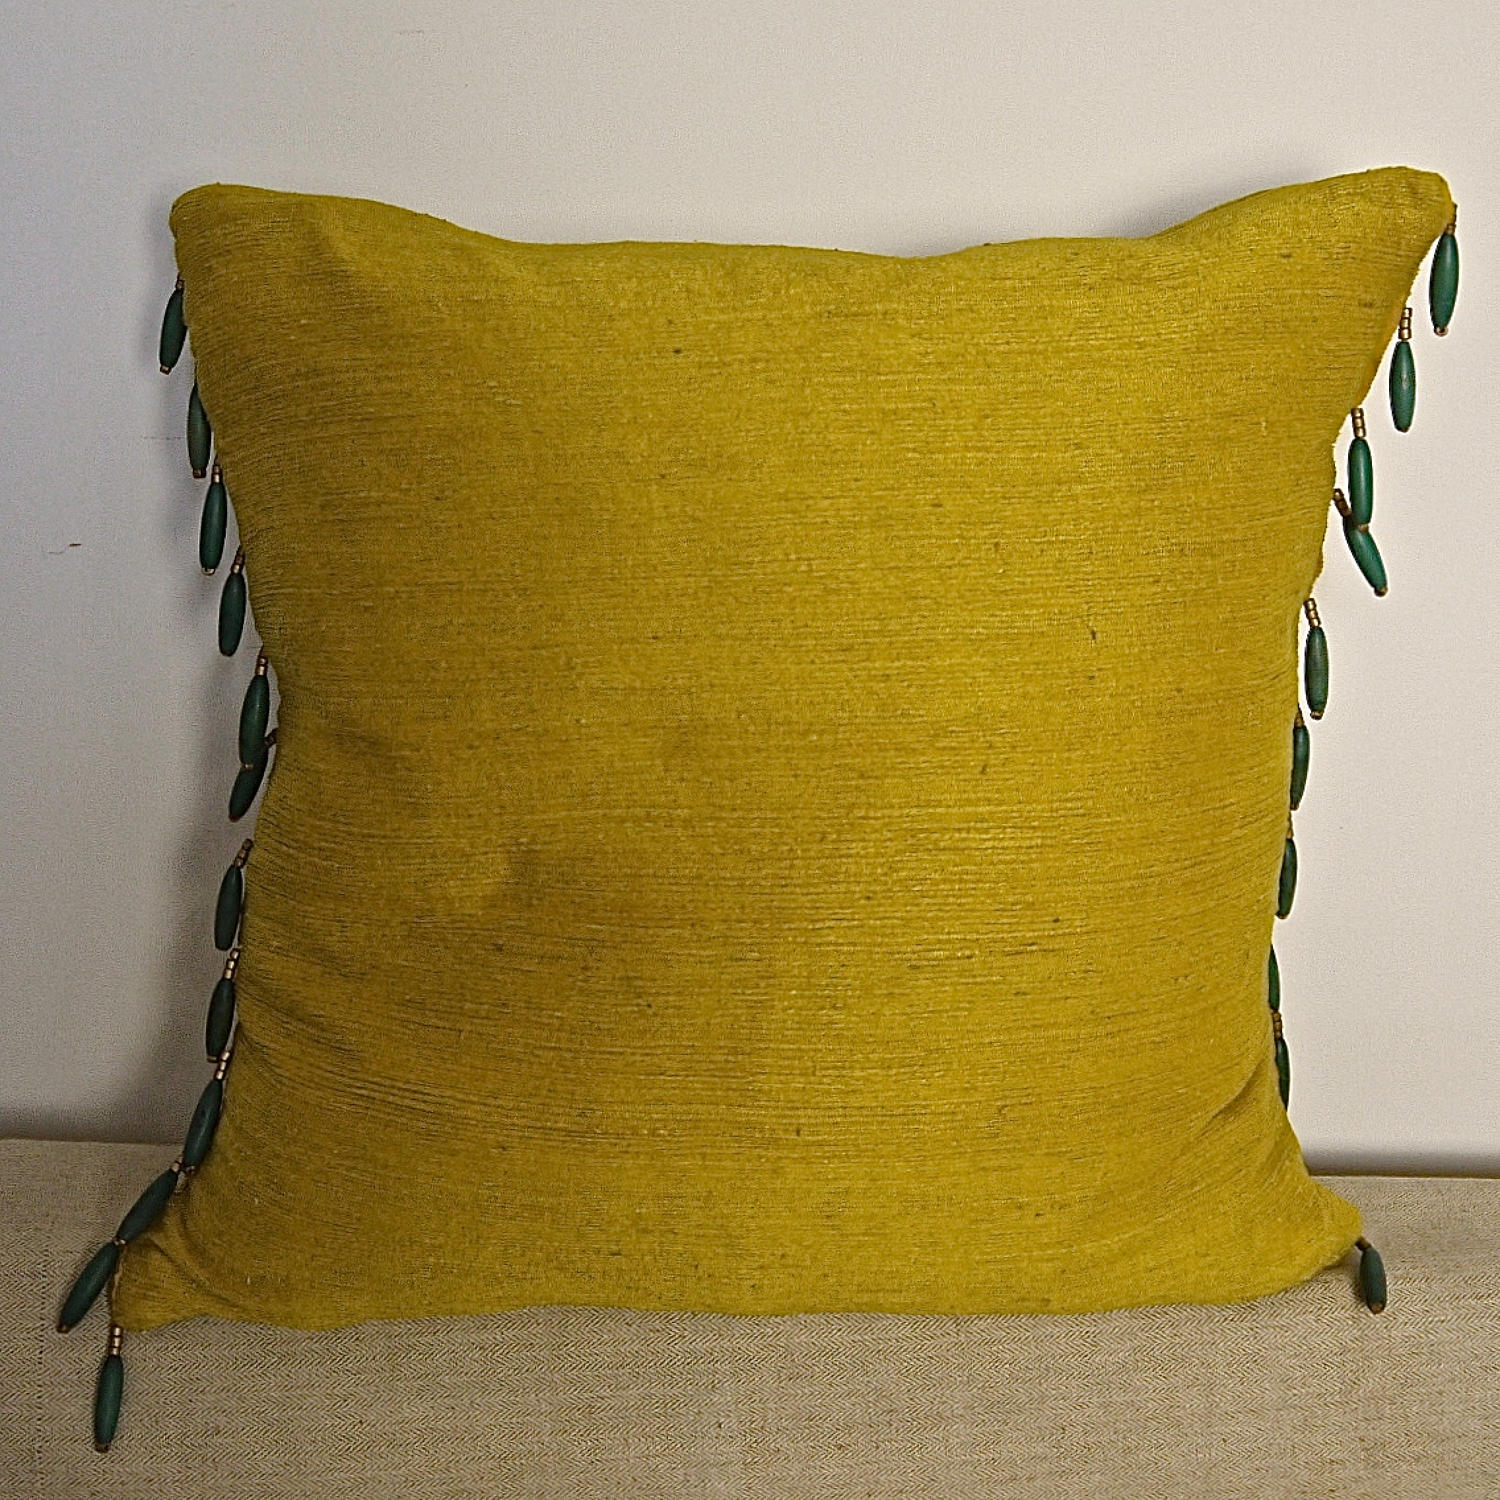 Early 19th century French saffron bourette silk cushion